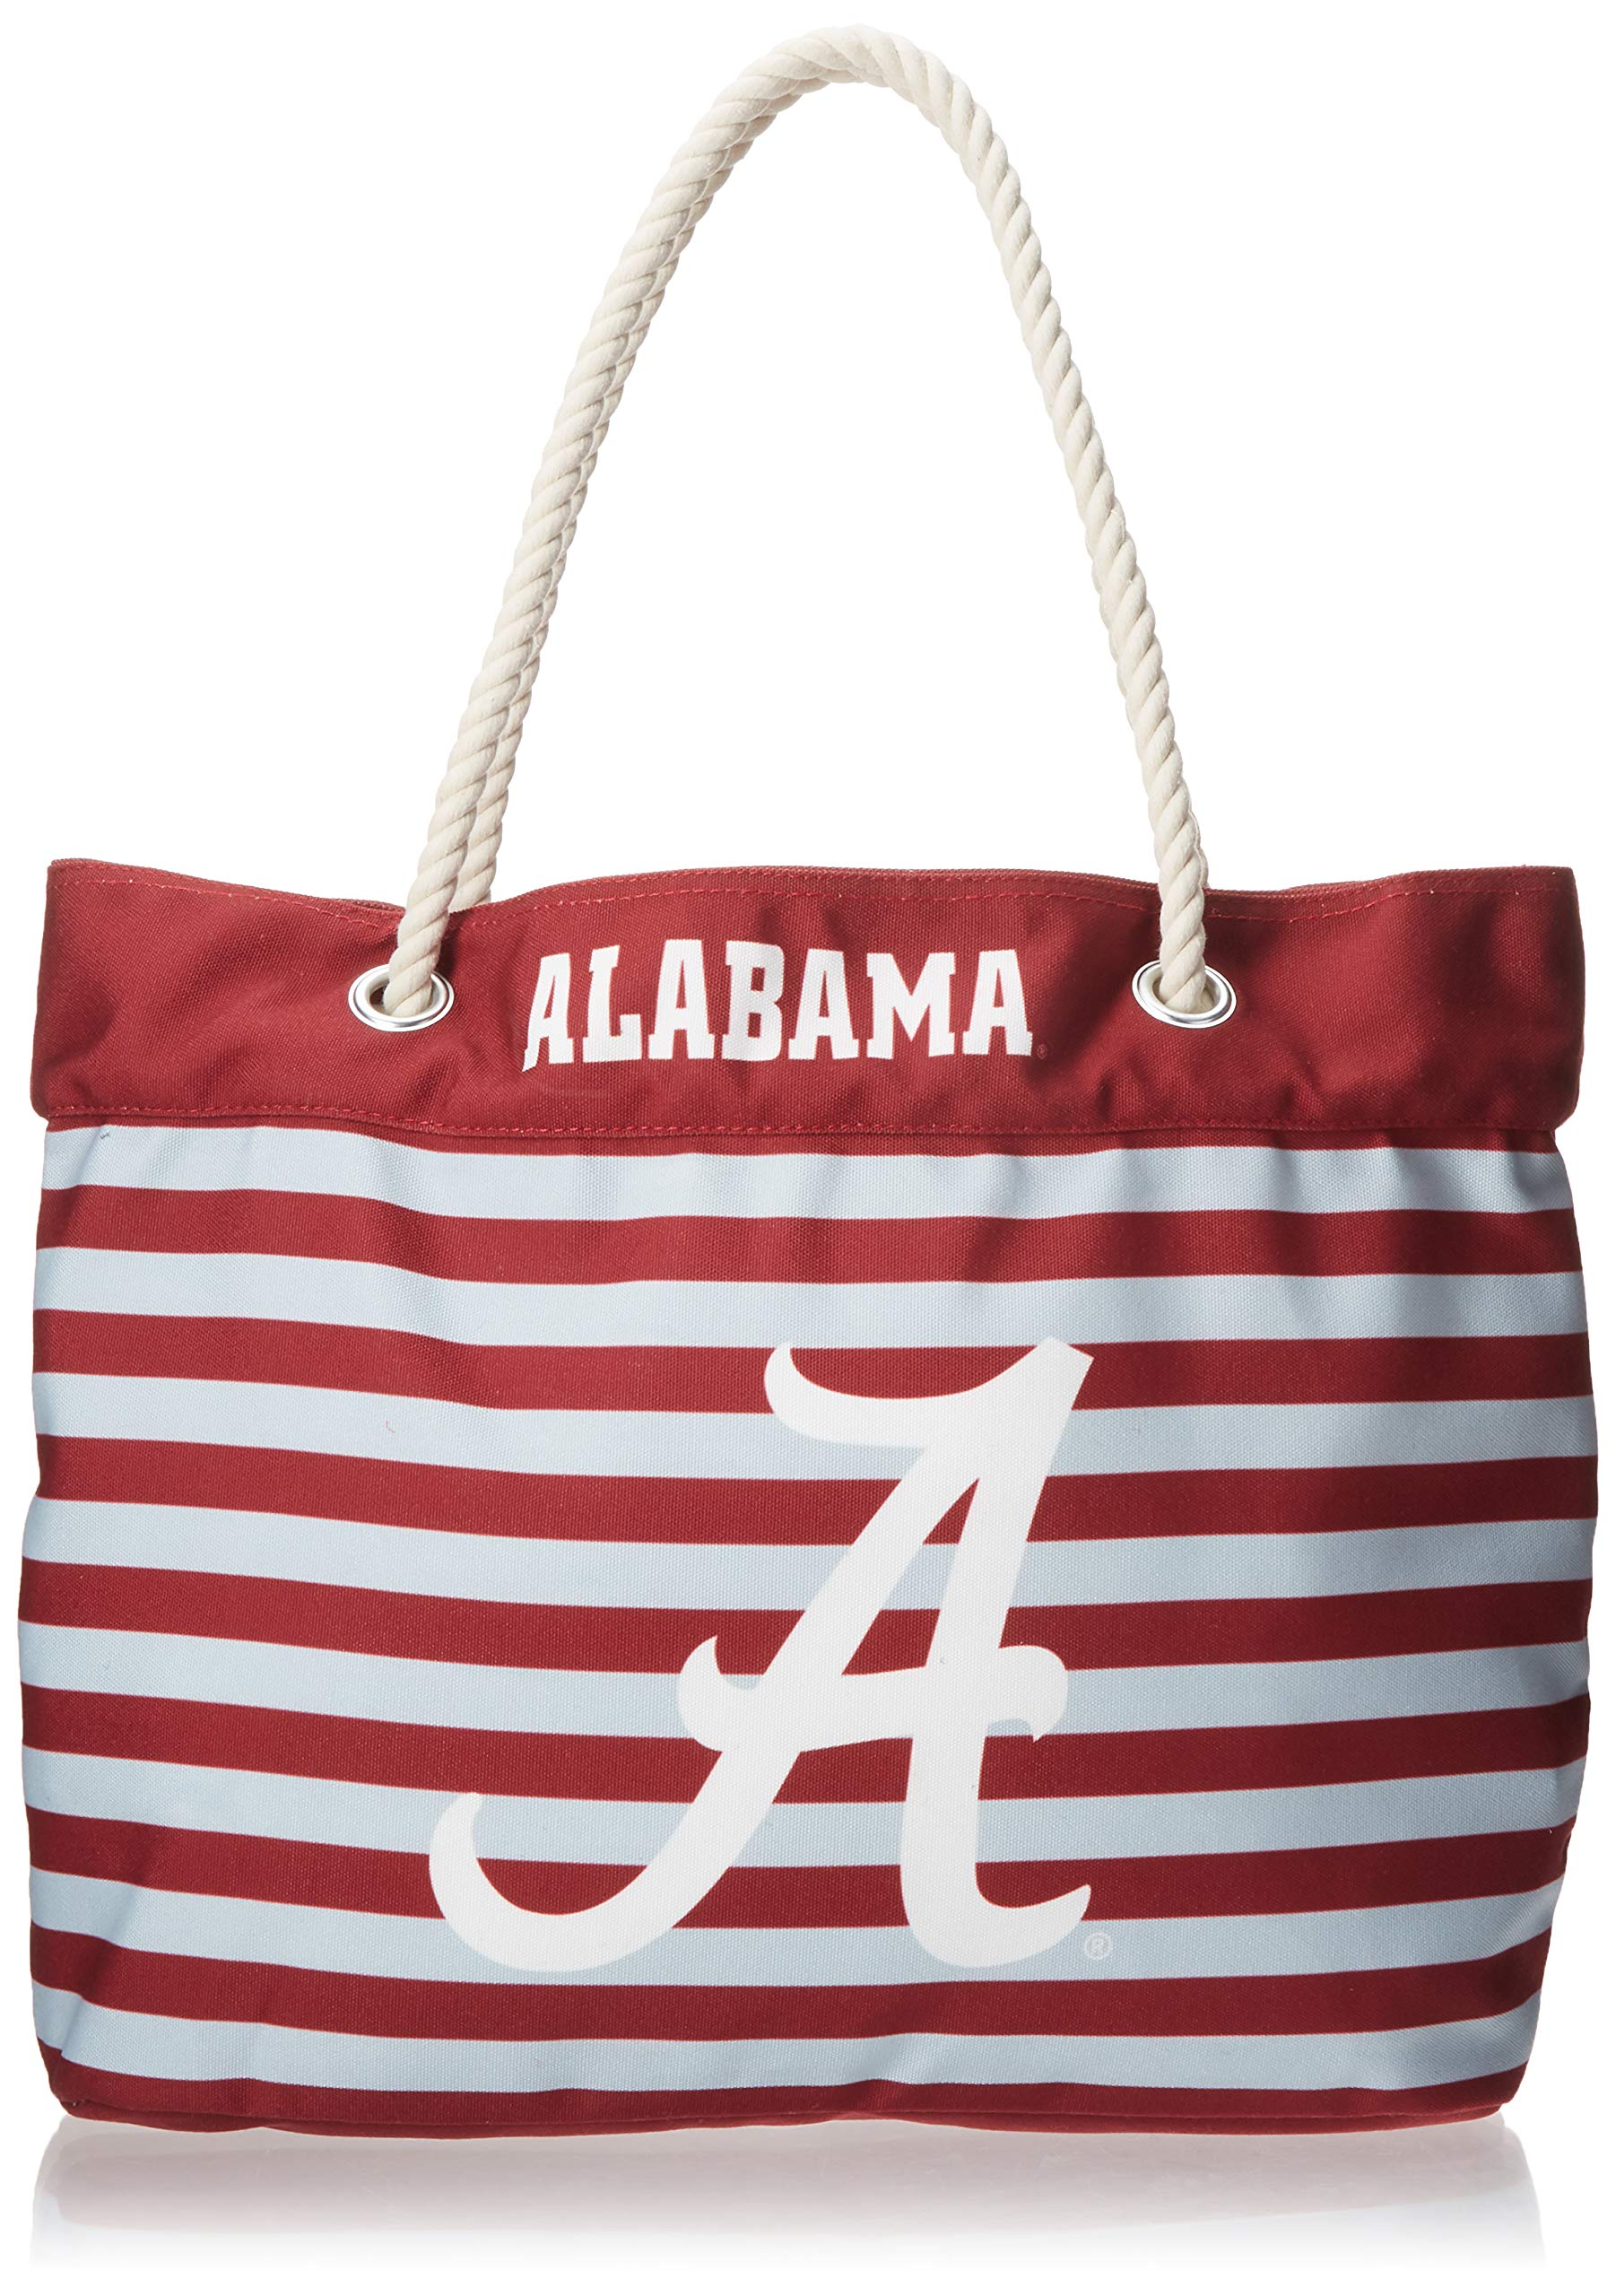 FOCO Alabama Nautical Stripe Tote Bag by FOCO